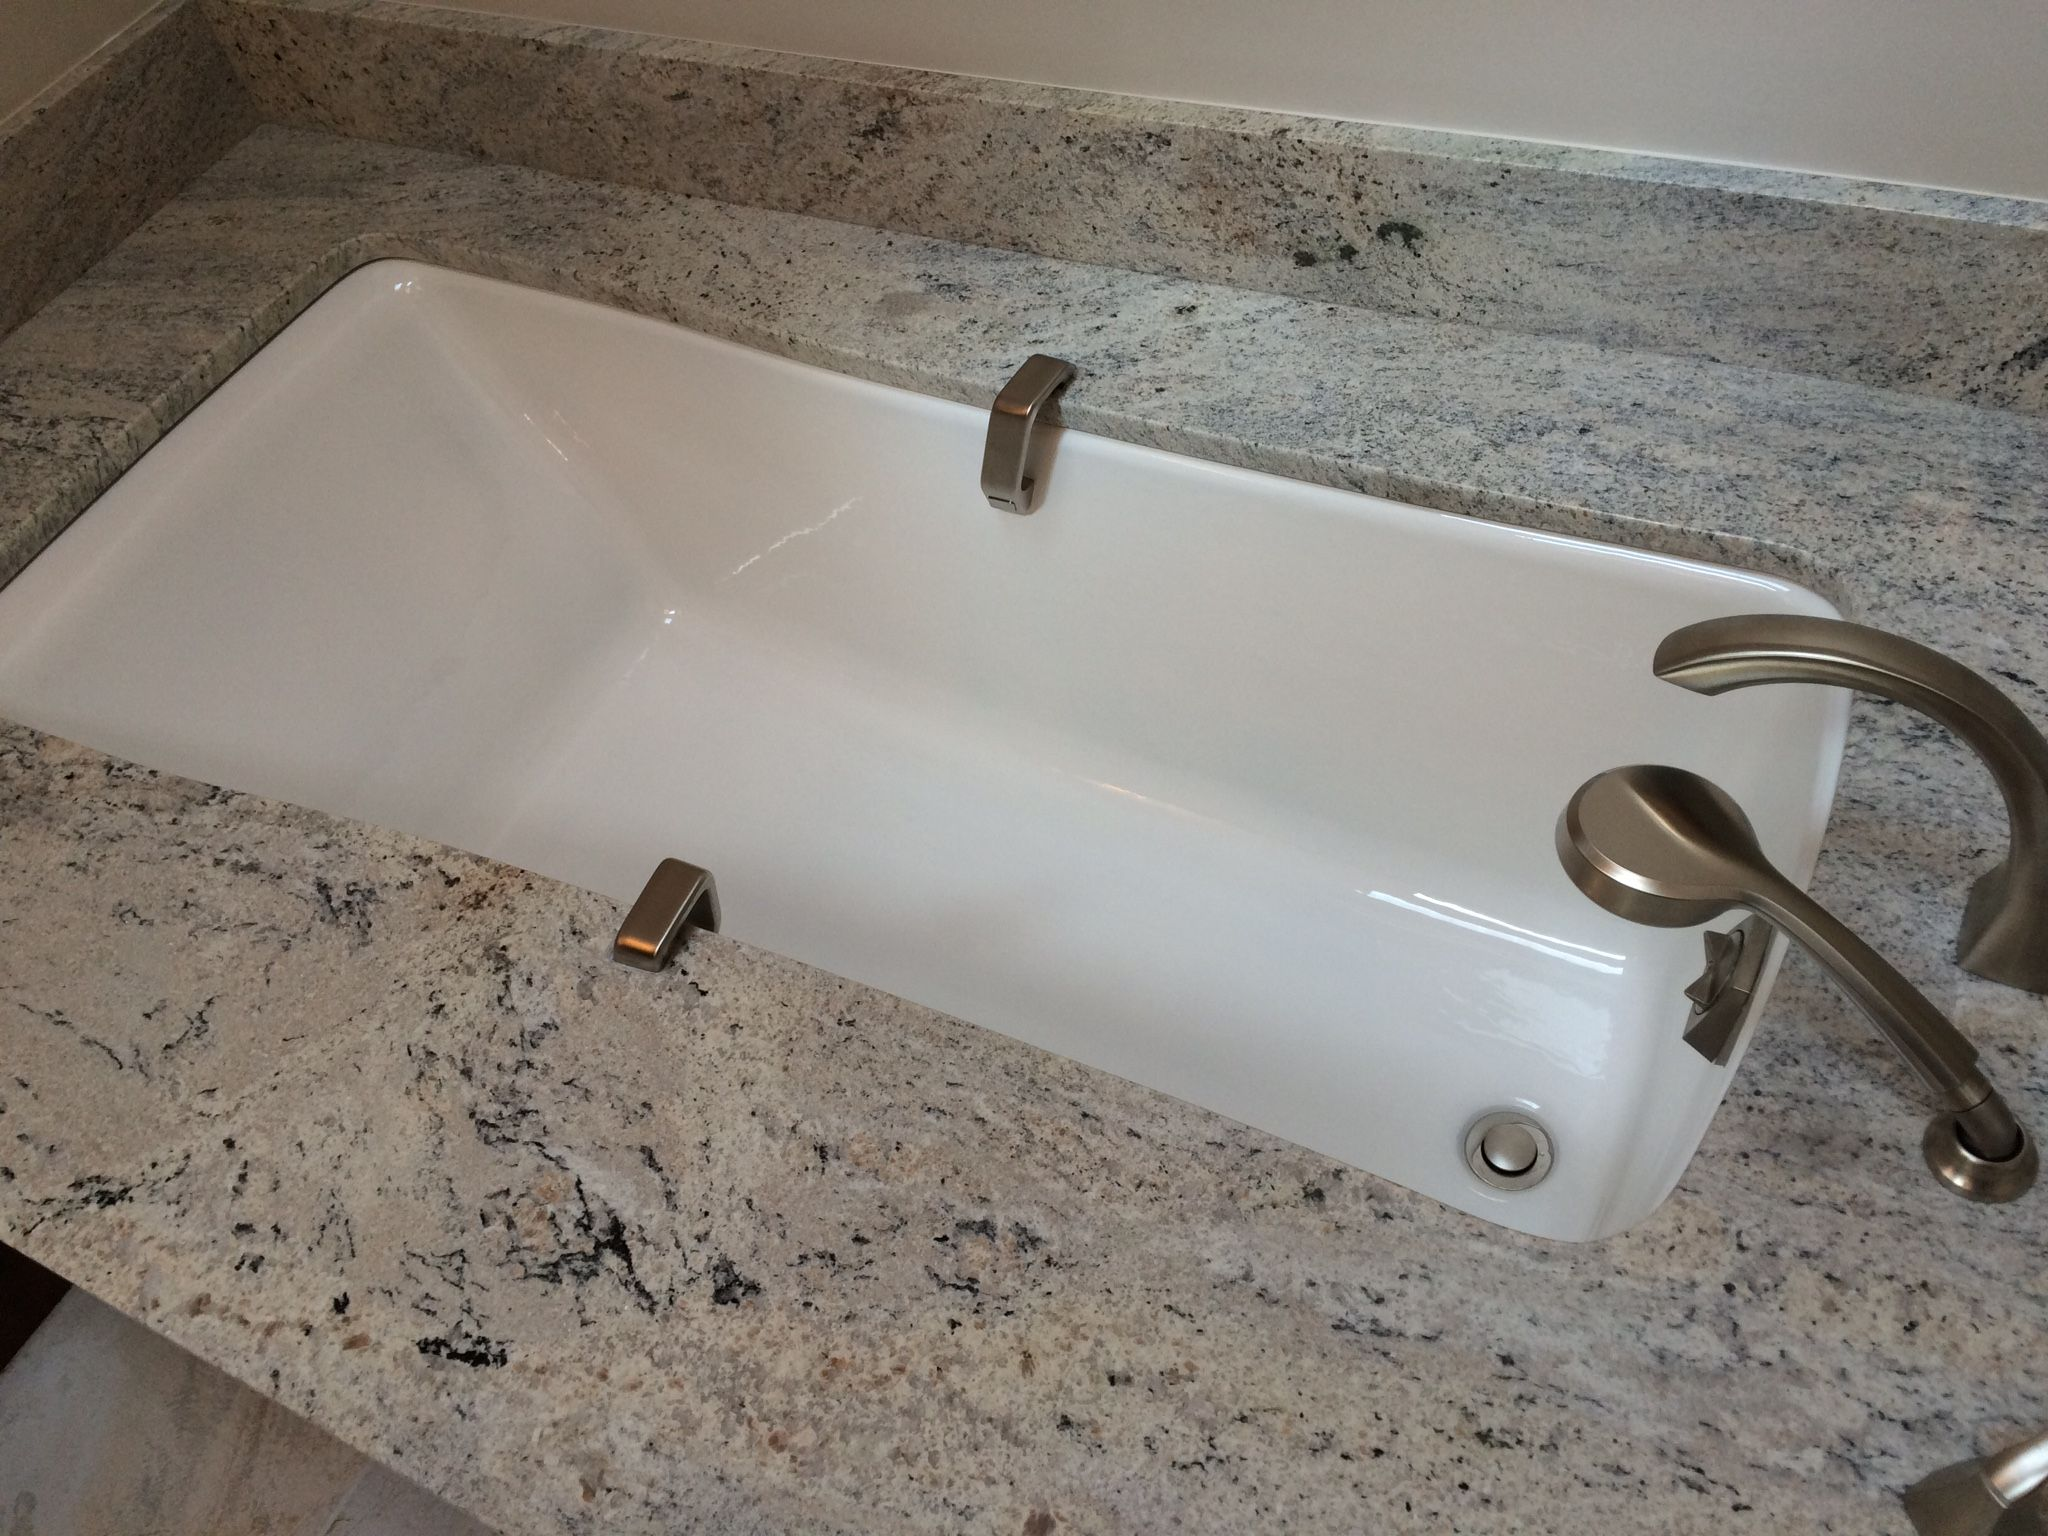 Kohler Maestro Undermount Tub with Celo De Marfil Granite | Sagent ...